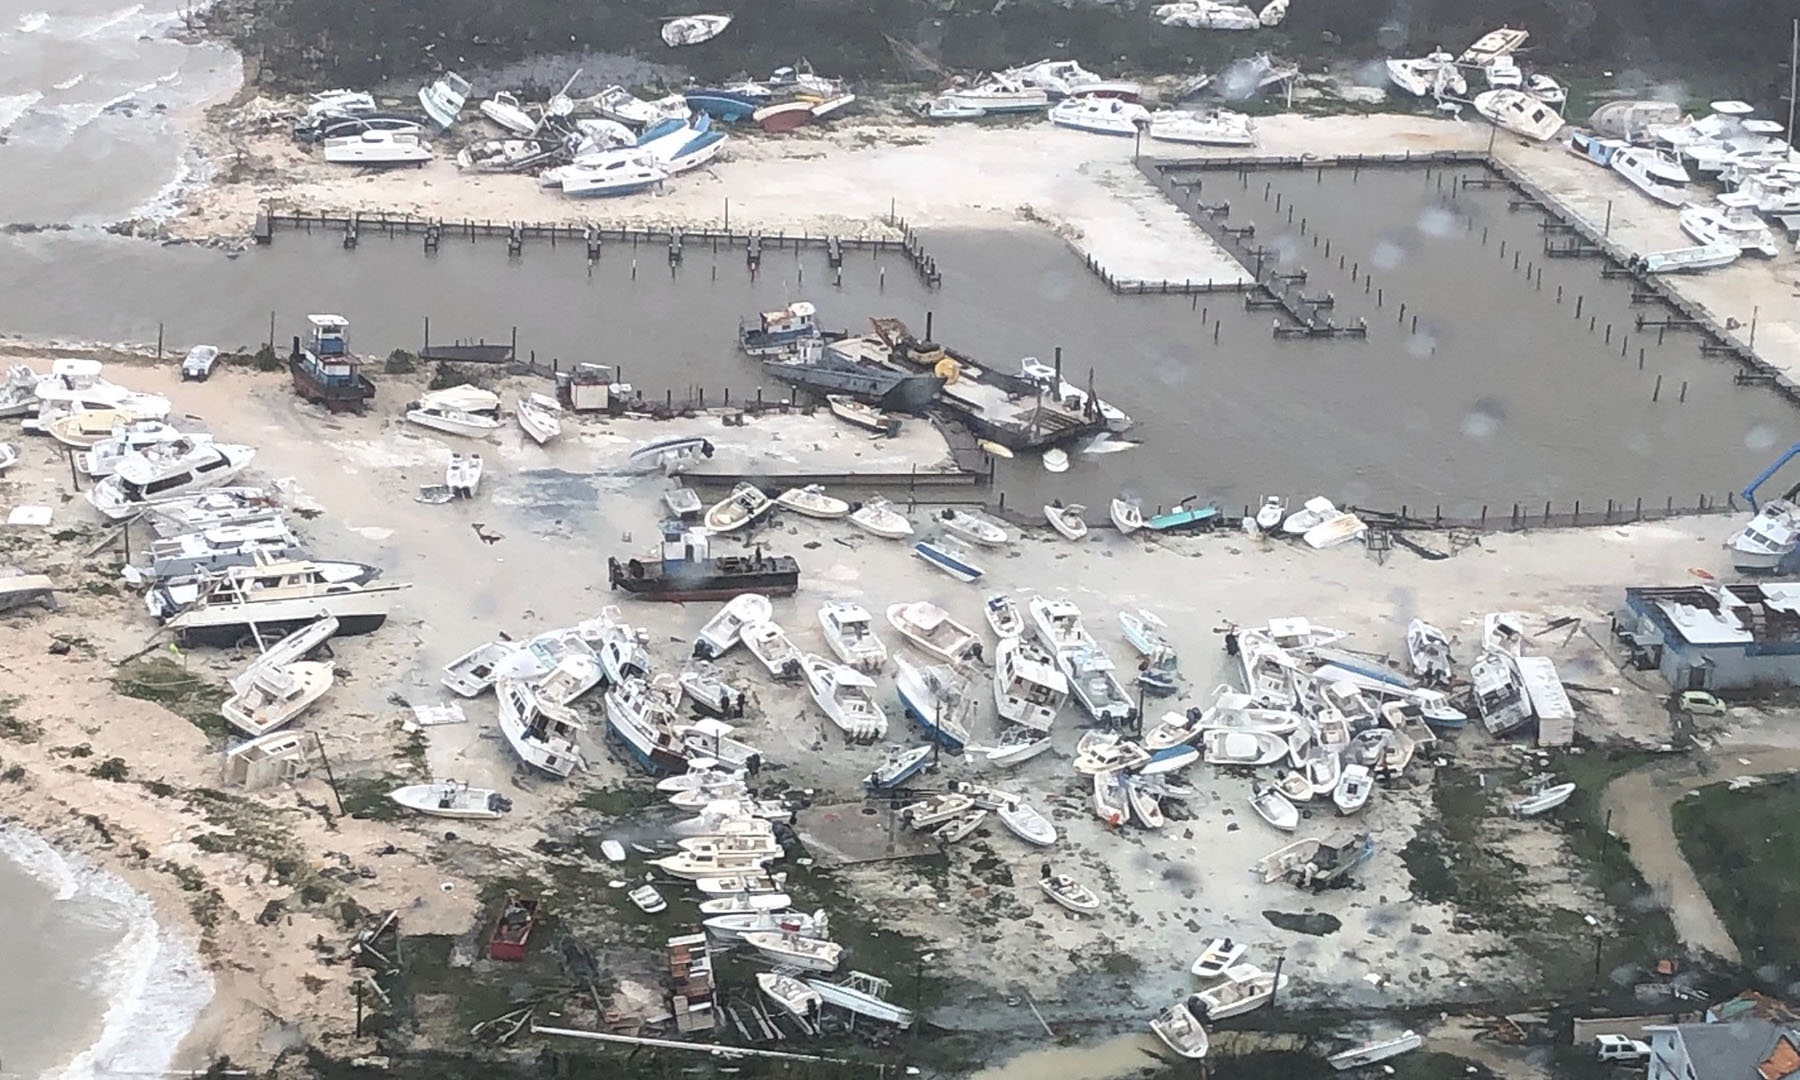 A hurricane-damaged marina in the Bahamas is seen from the air on Sept. 2, 2019, and search and rescue efforts are underway across the islands. (Photo by Coast Guard Air Station Clearwater)